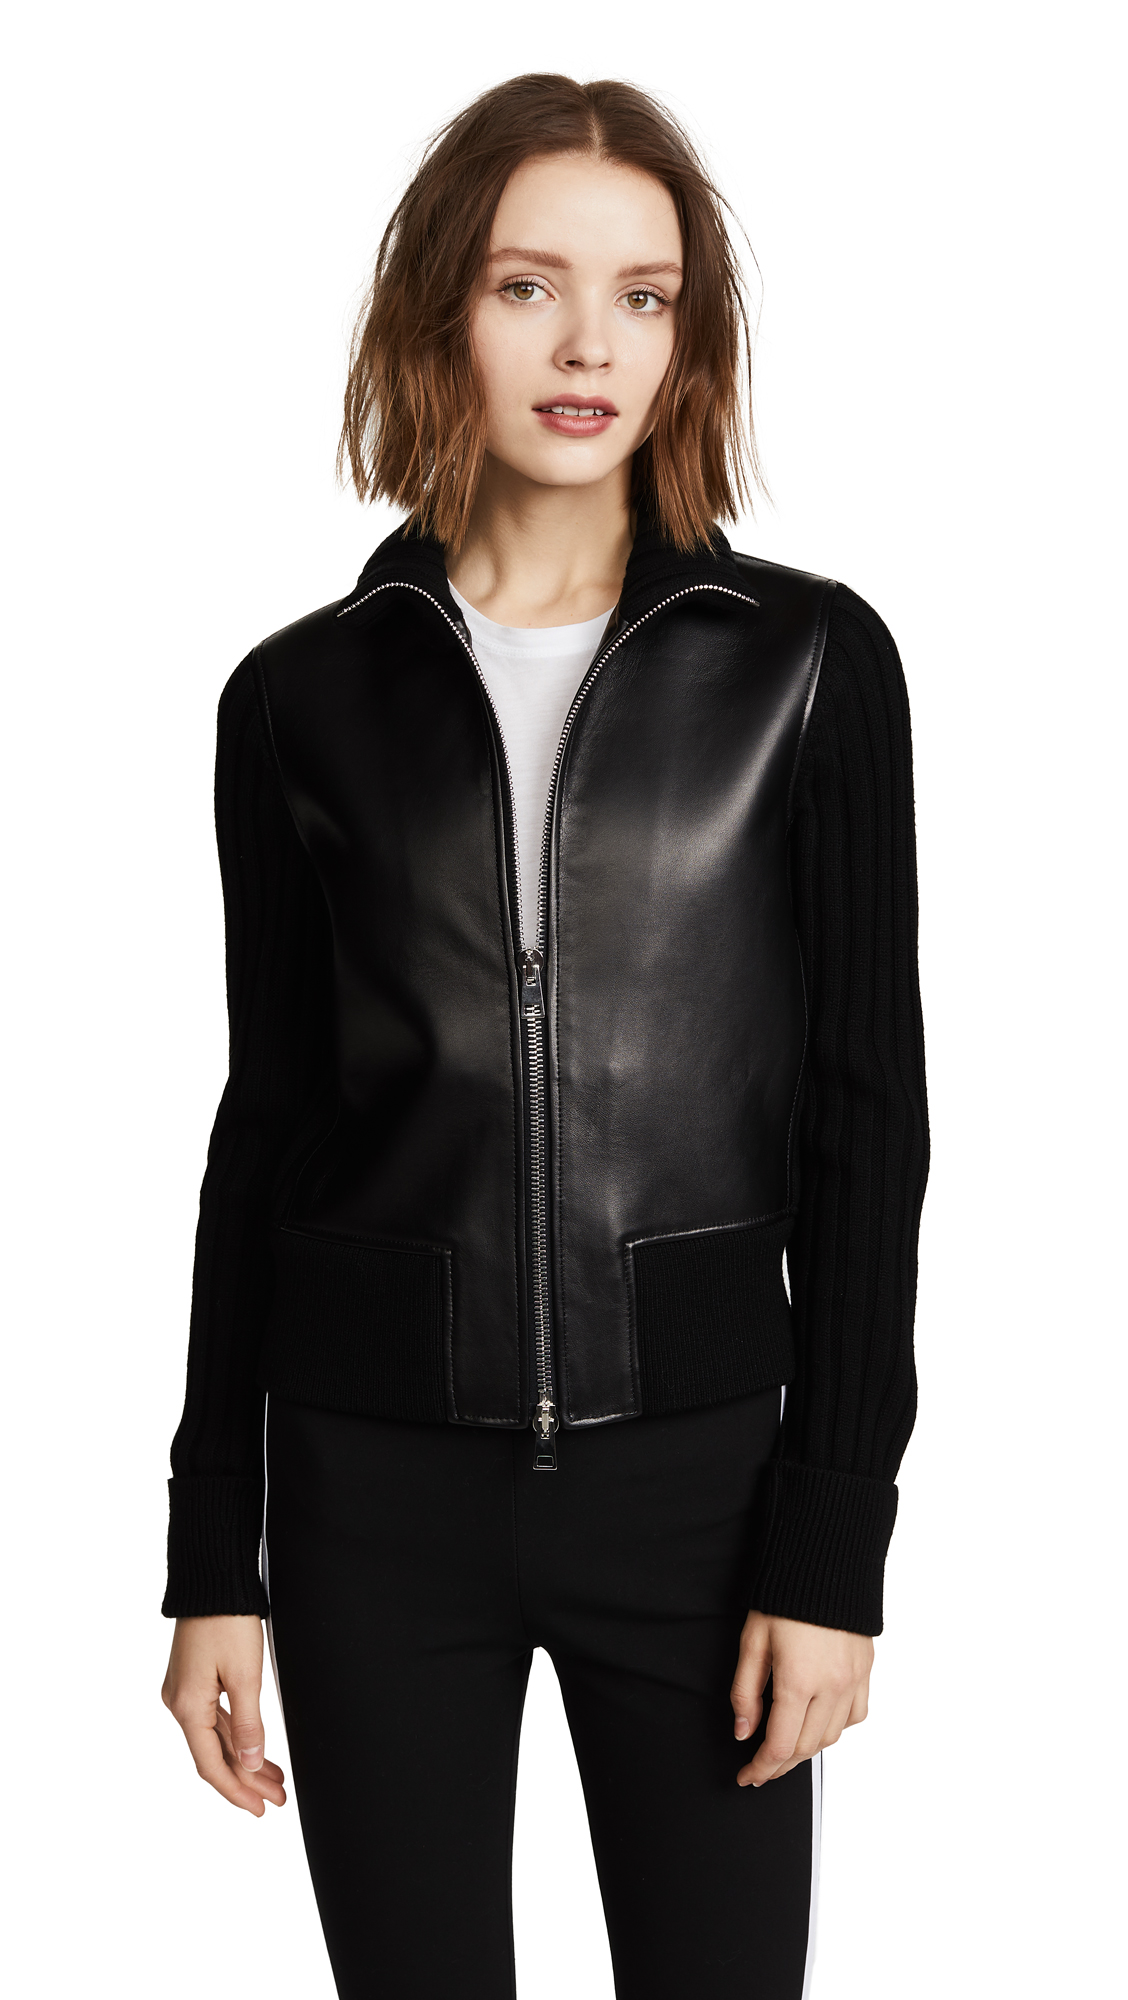 Theory Bonded Leather Rib Jacket - Black/Charcoal